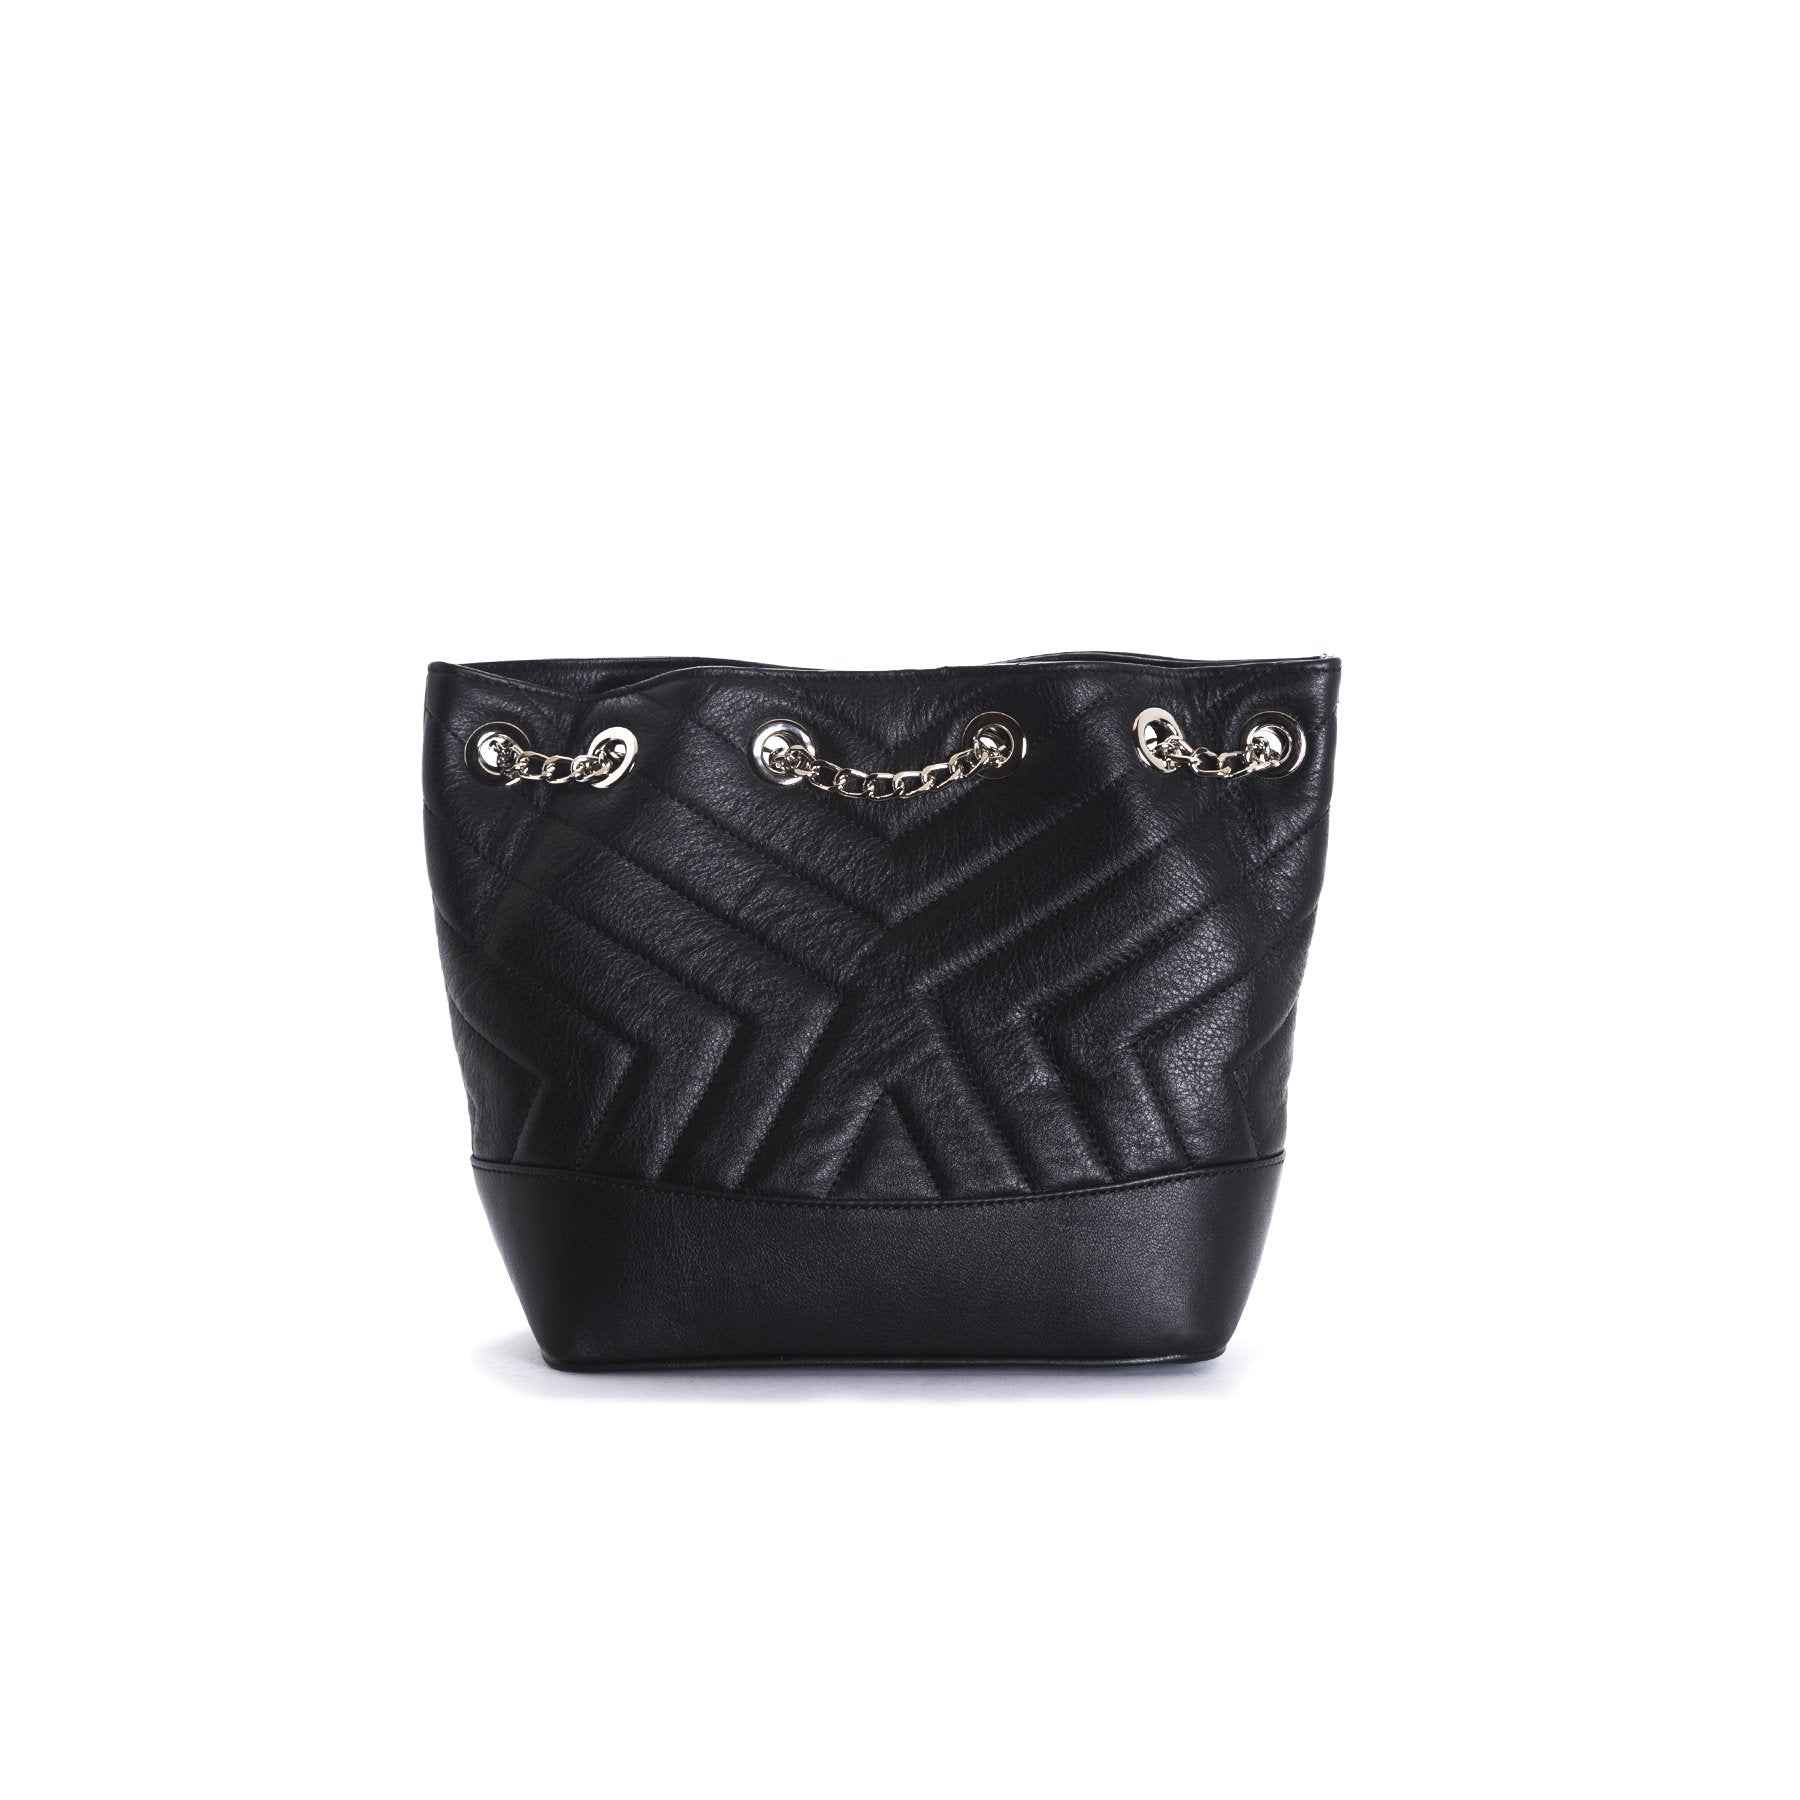 Ginette Black Leather Shoulder Bags